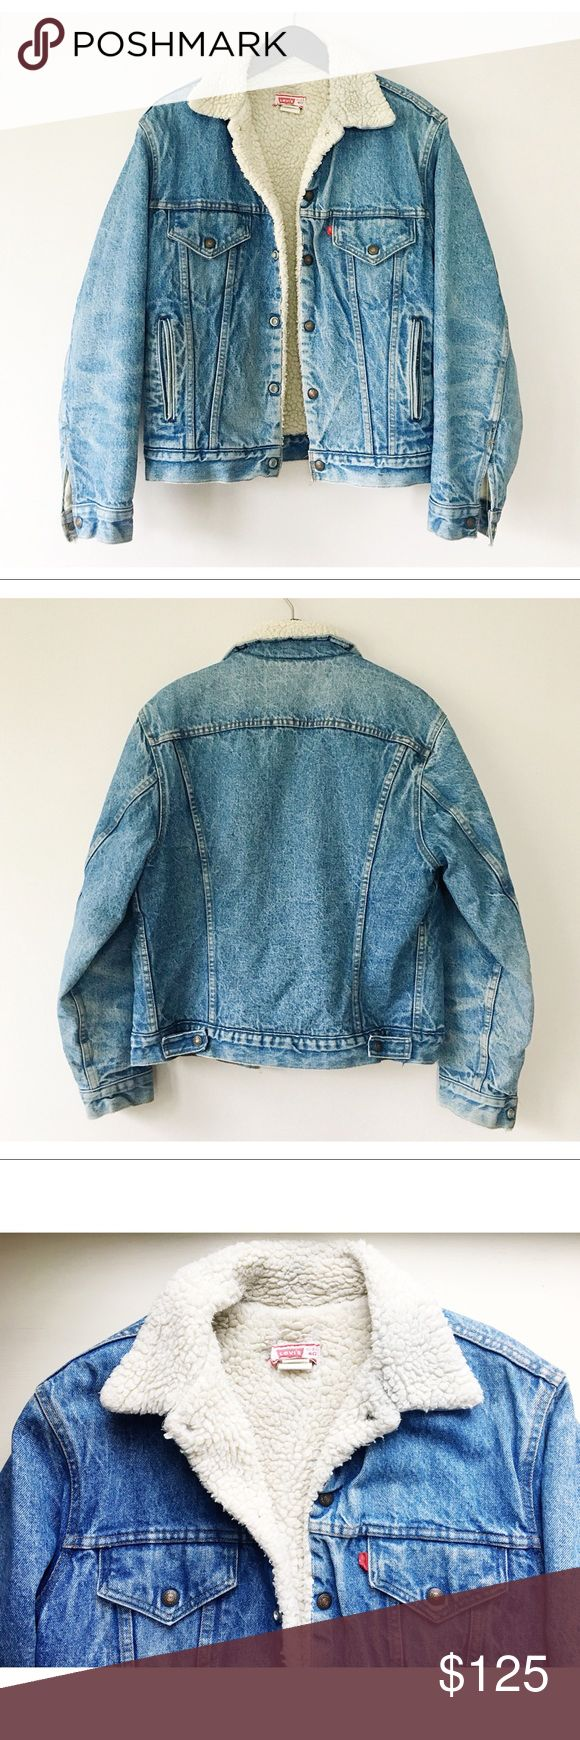 Vintage Levi's Sherpa Denim Trucker Jacket M 60s 70s Levi's Denim Sherpa Trucker Jacket. Perfectly worn in. Small hole behind Levi's tag but otherwise in excellent condition. Fits ladies oversized S-M or L. Will also work as a slim fit men's M tall. Levi's Jackets & Coats